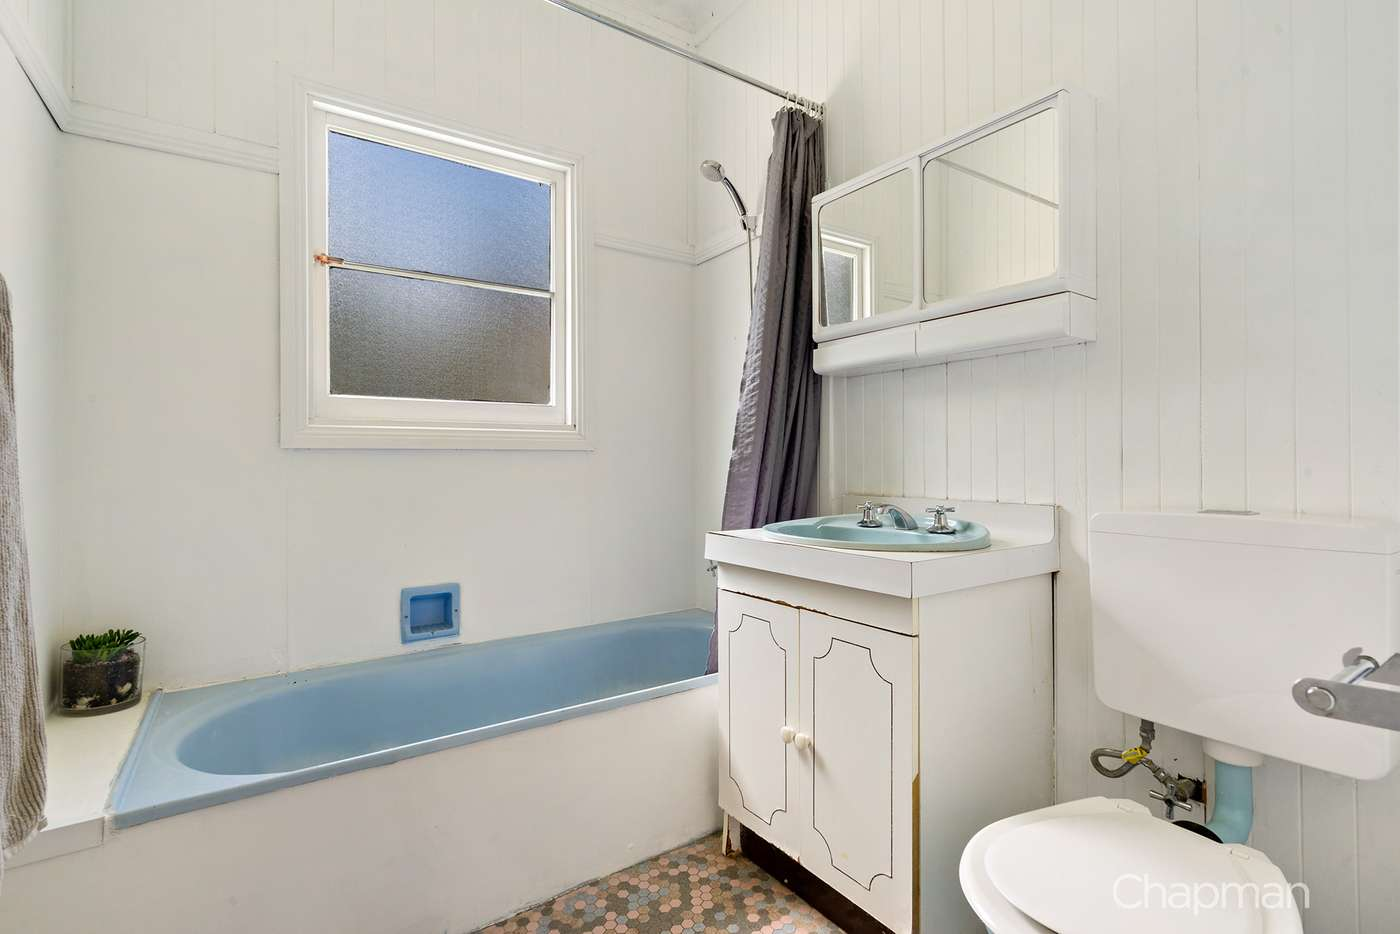 Fifth view of Homely house listing, 26 Catherine Crescent, Blaxland NSW 2774